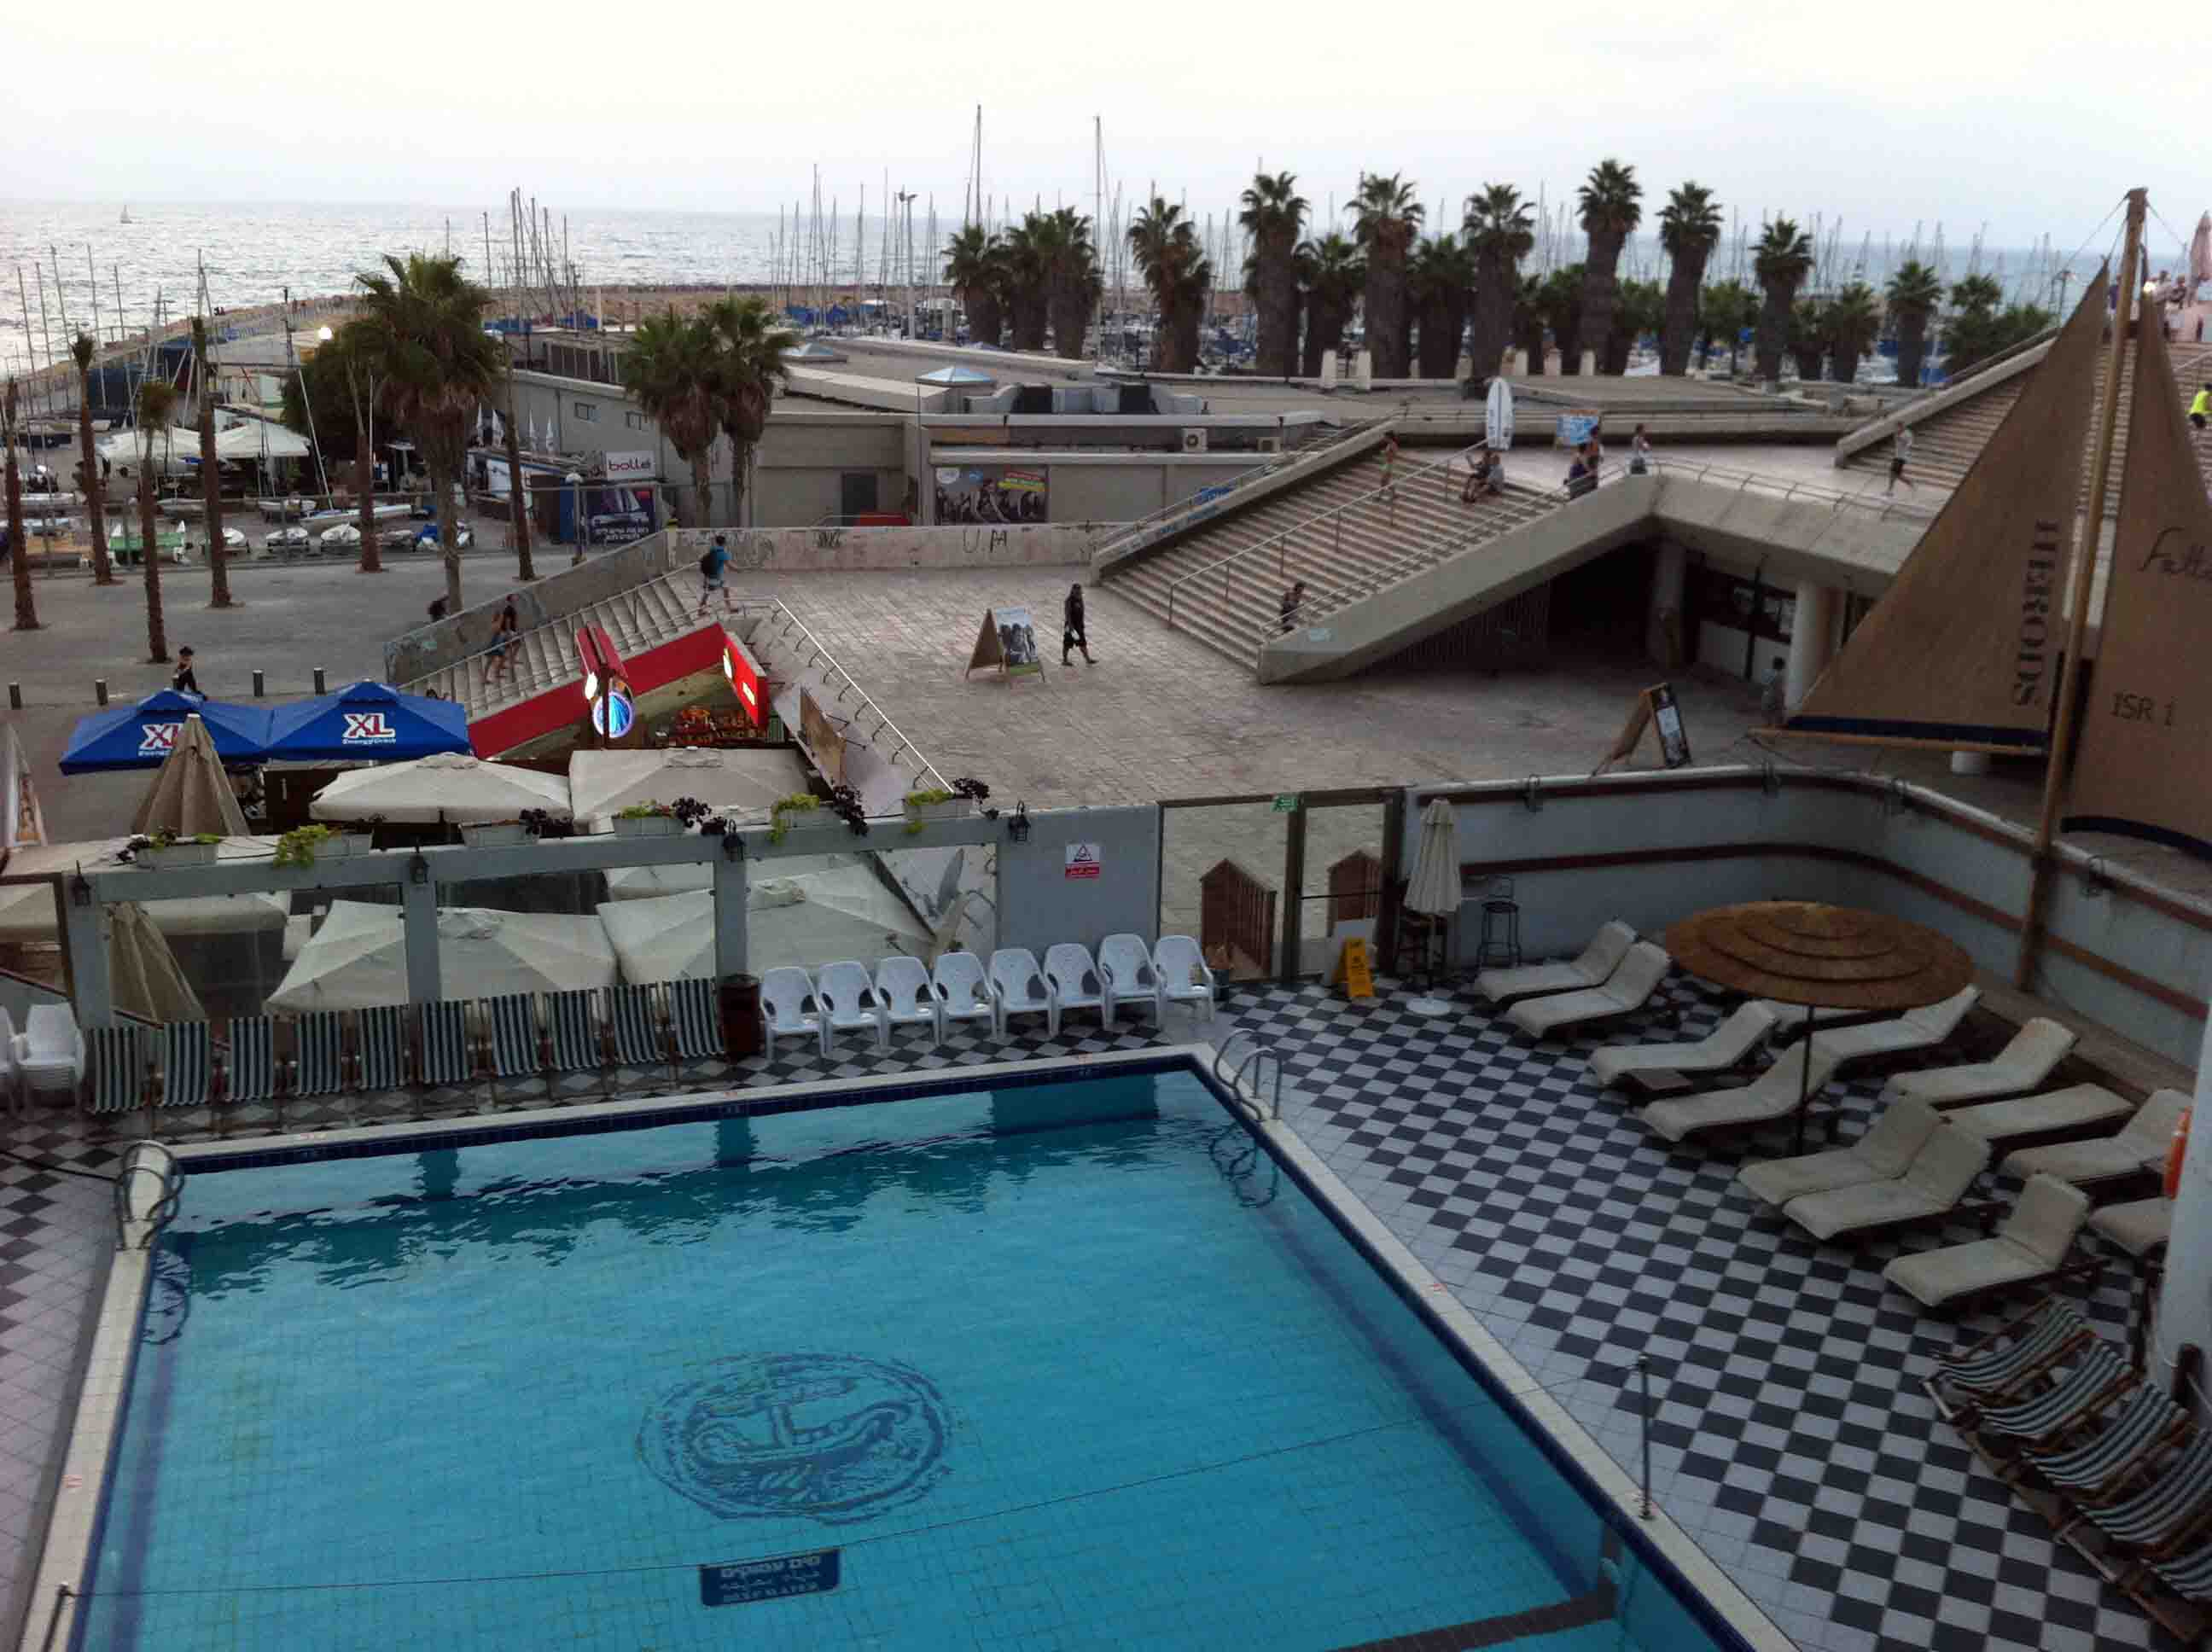 Hotel Tel Aviv Piscine Liliyot Restaurant In Tel Aviv Is Highly Recommended